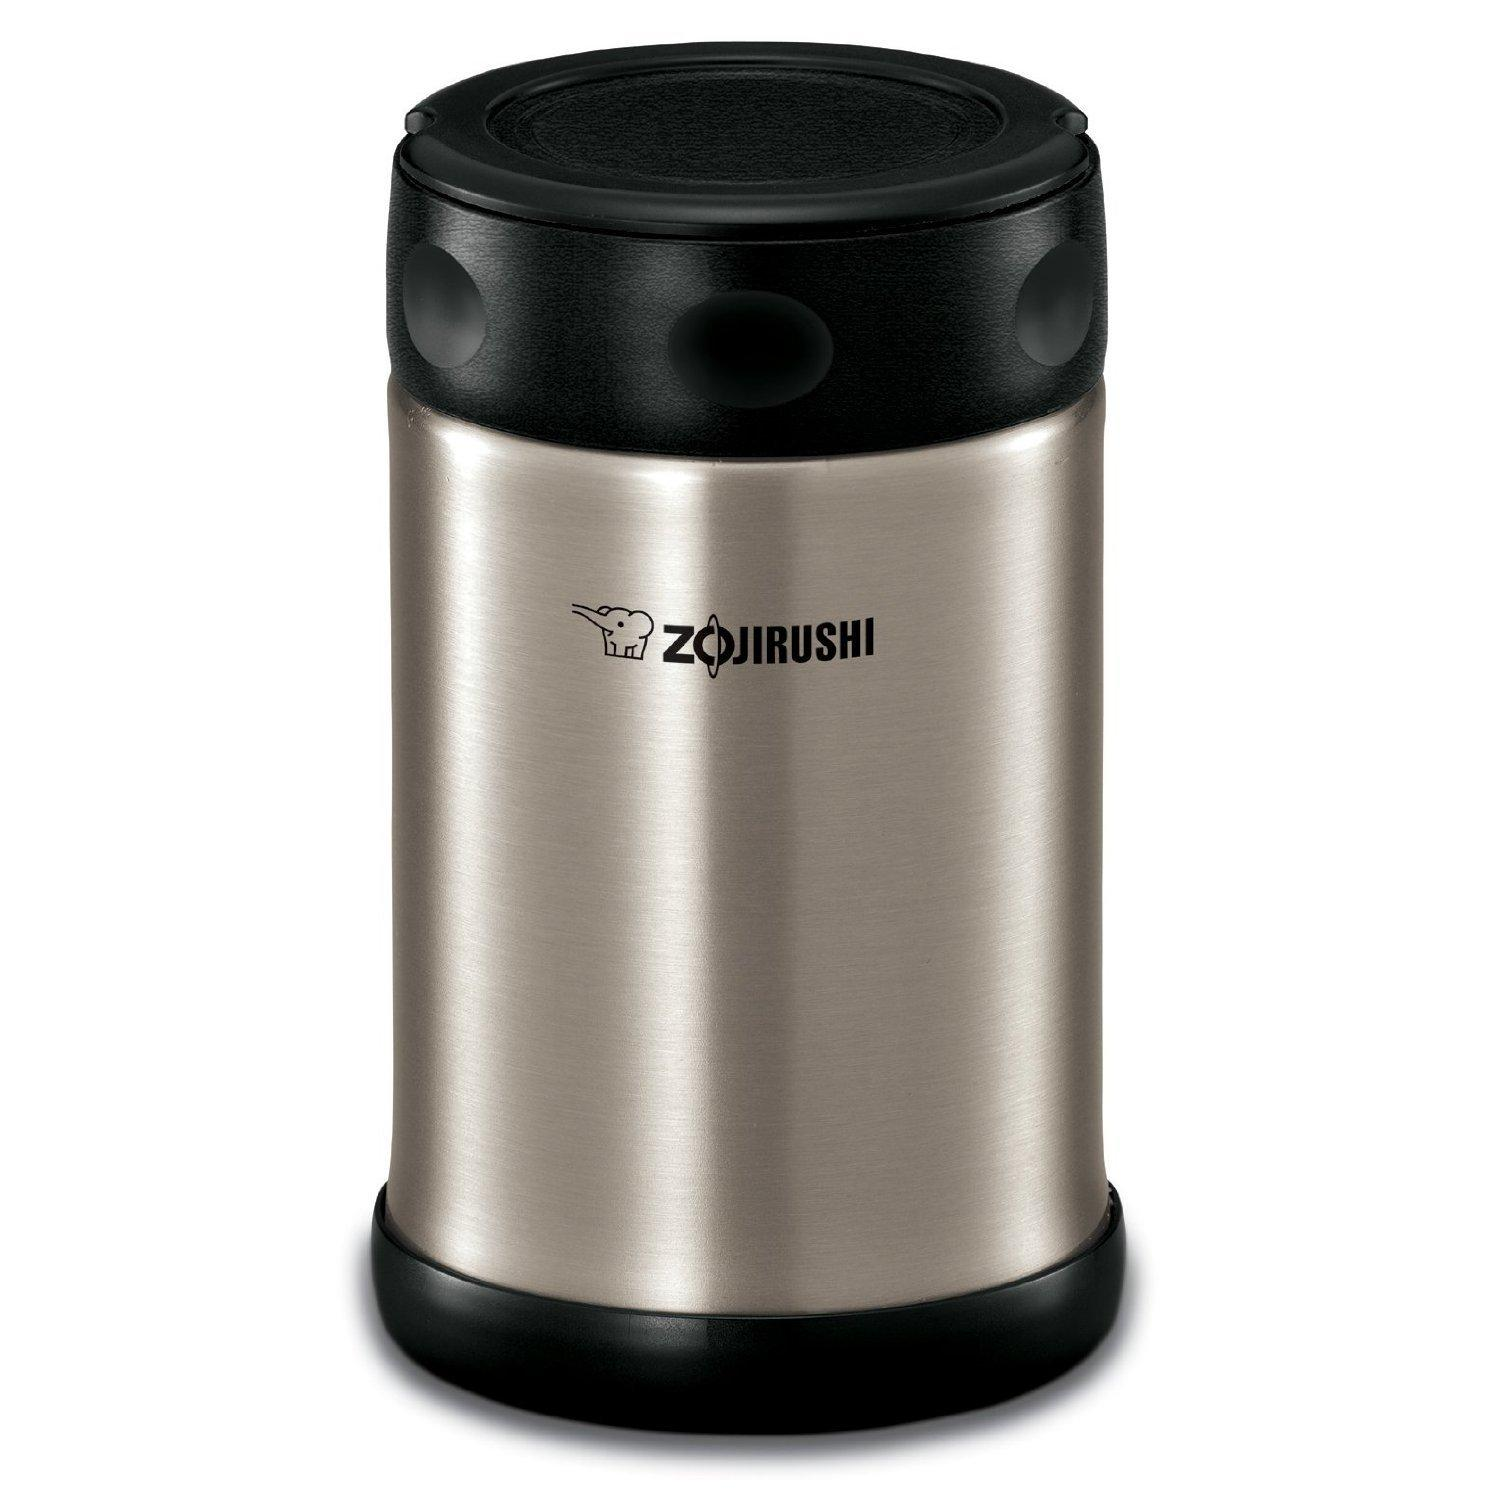 Zojirushi SW-EAE50XA Stainless Steel Food Jar 16 oz.